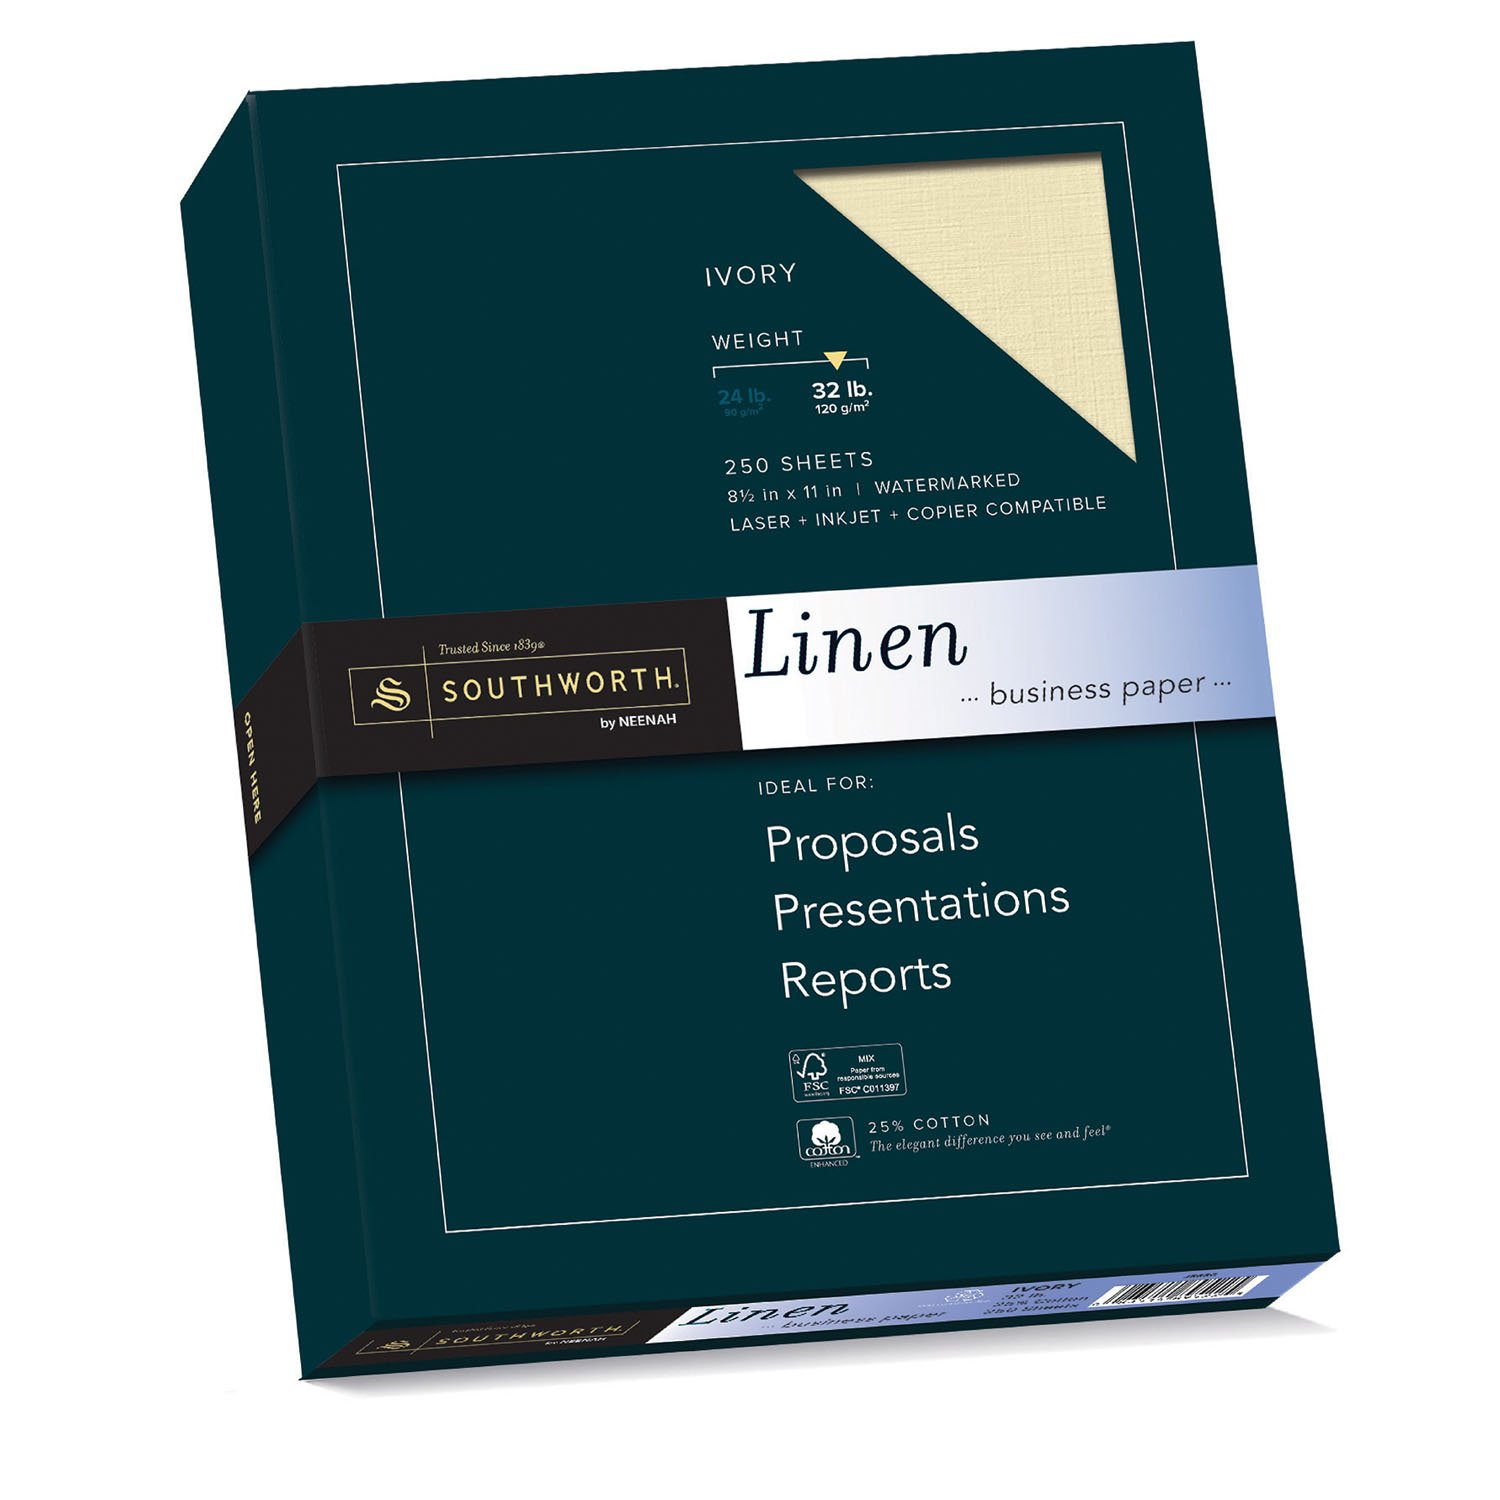 Amazon.com : Southworth Linen Business Paper, Ivory, 32 Pounds, 250 Count  (J568C) : Office Products  Resume Paper Weight